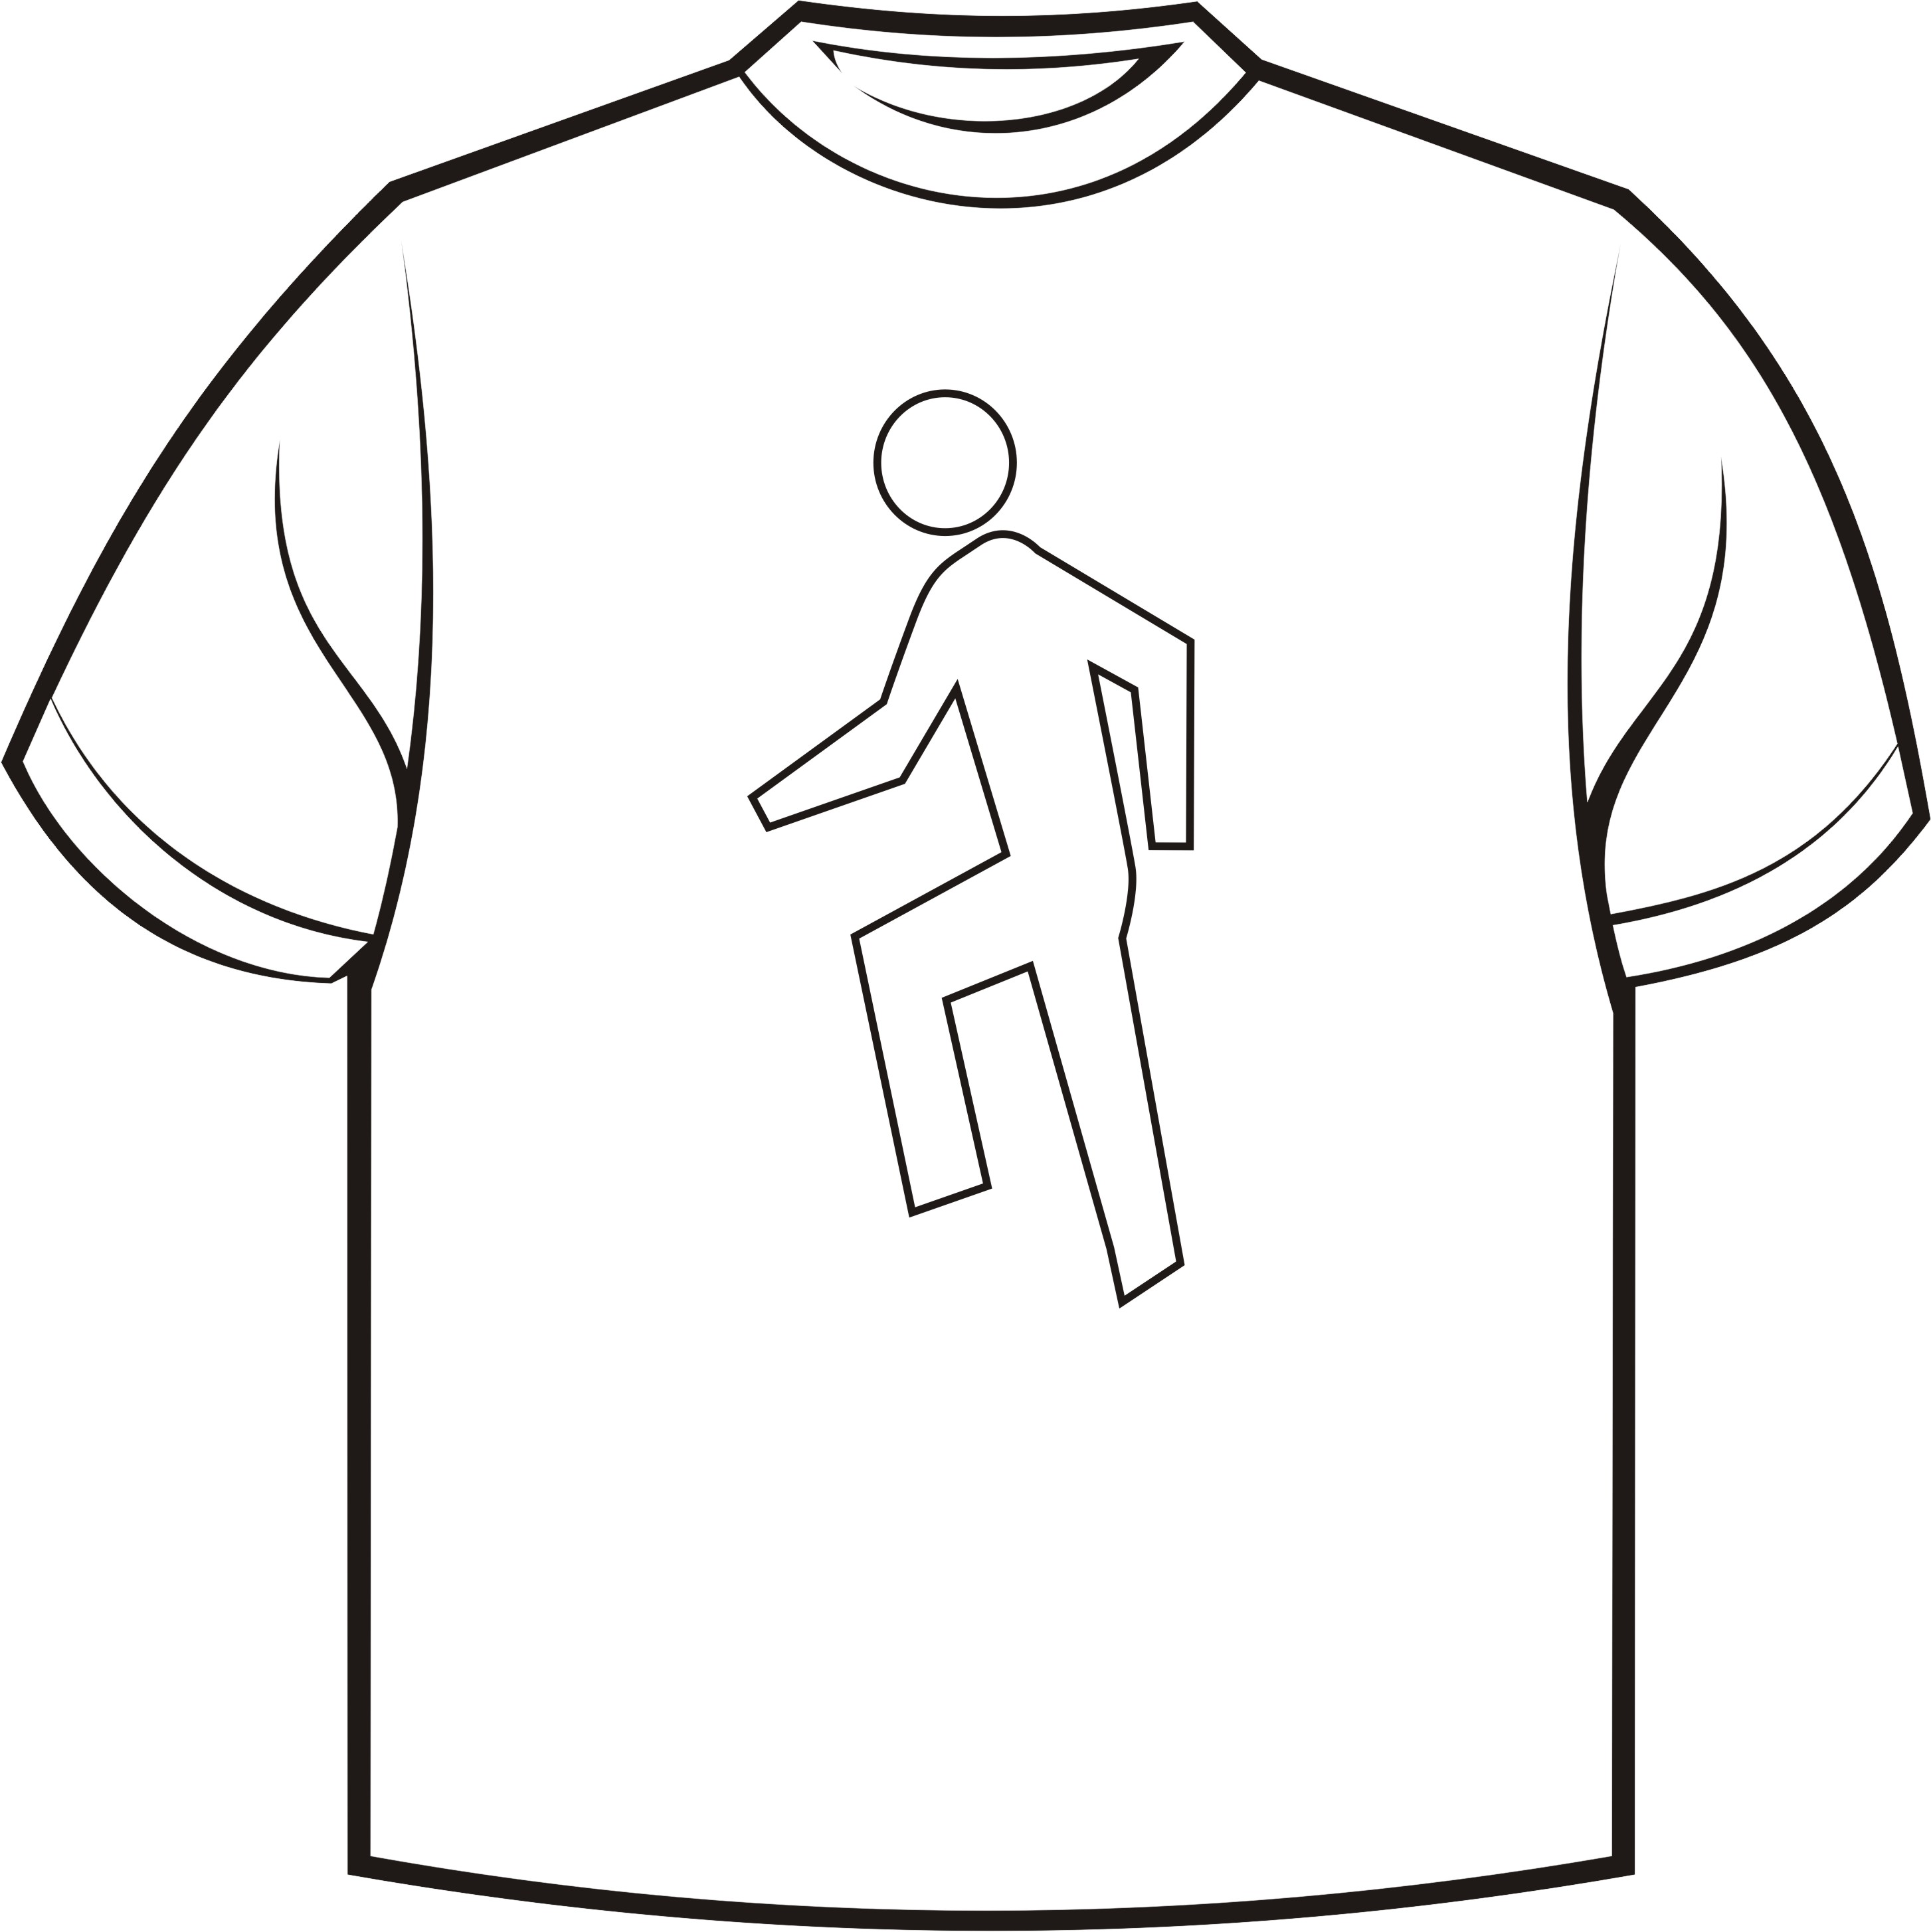 Shirt Character Clipart Black And White.